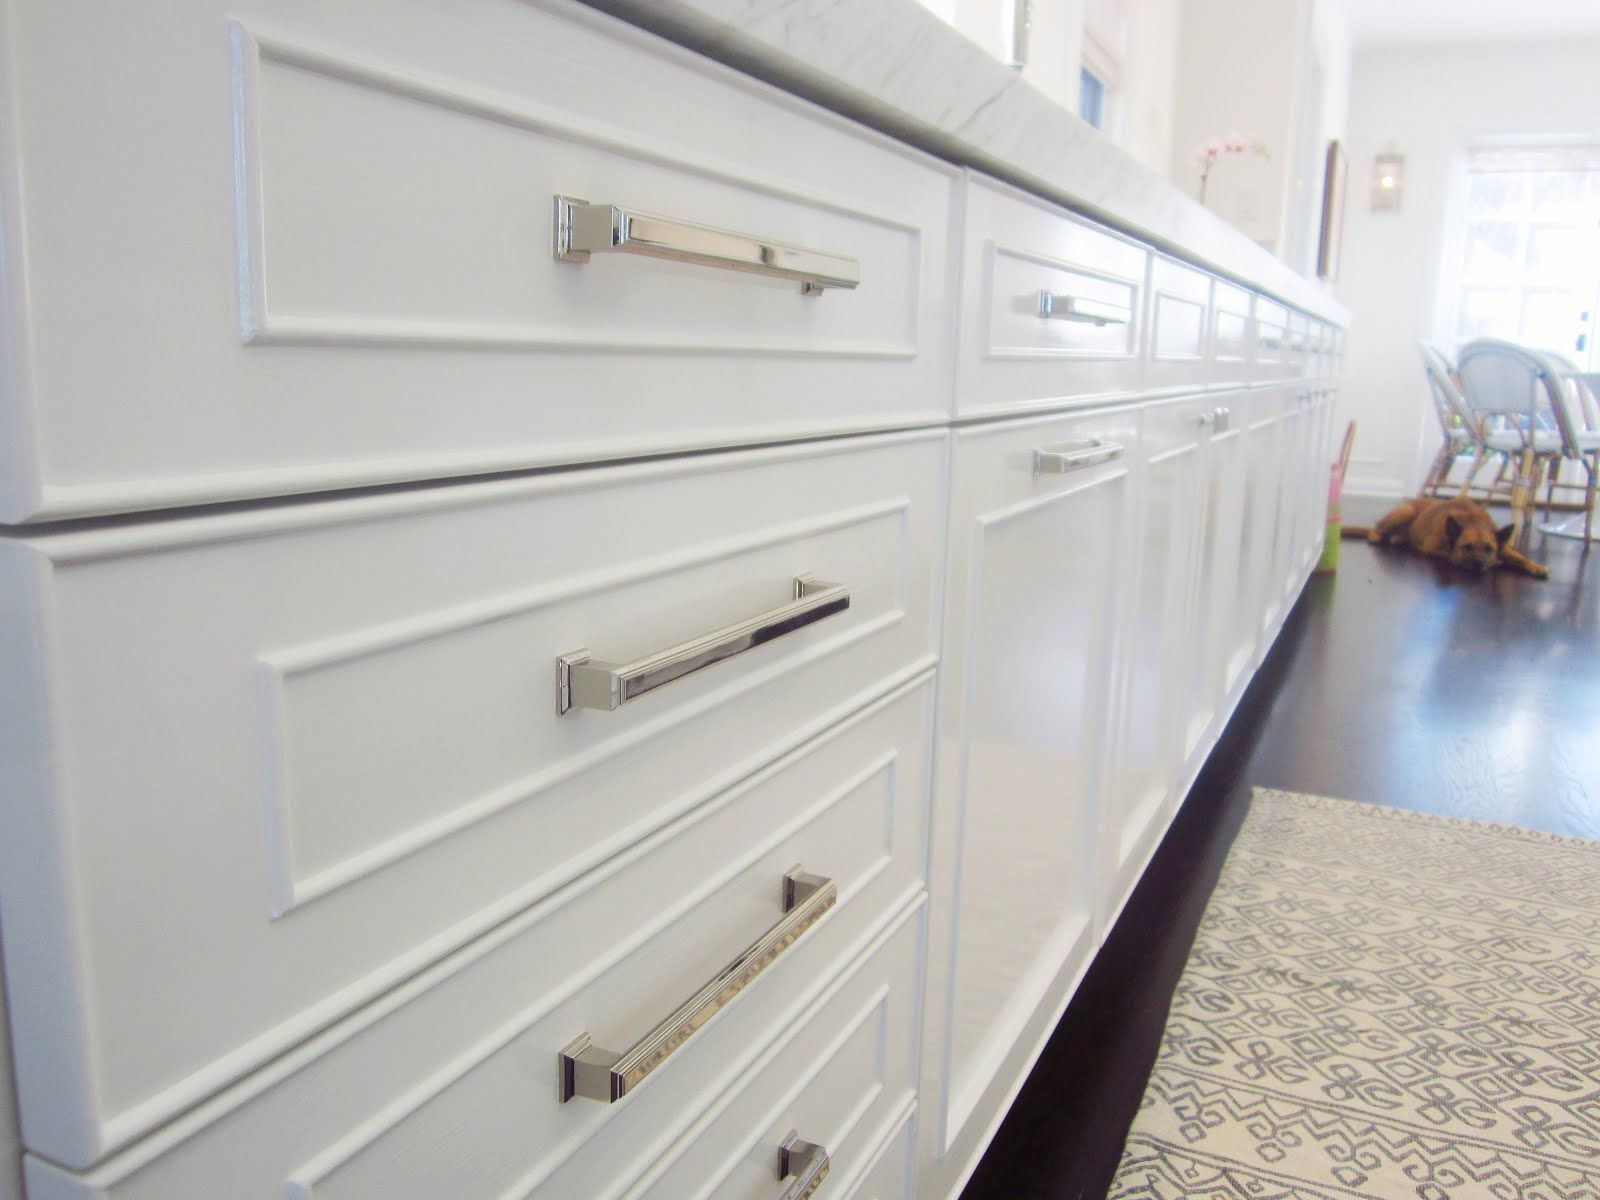 White Kitchen Knobs exclusive: a chic galley kitchen | polished nickel, drawers and